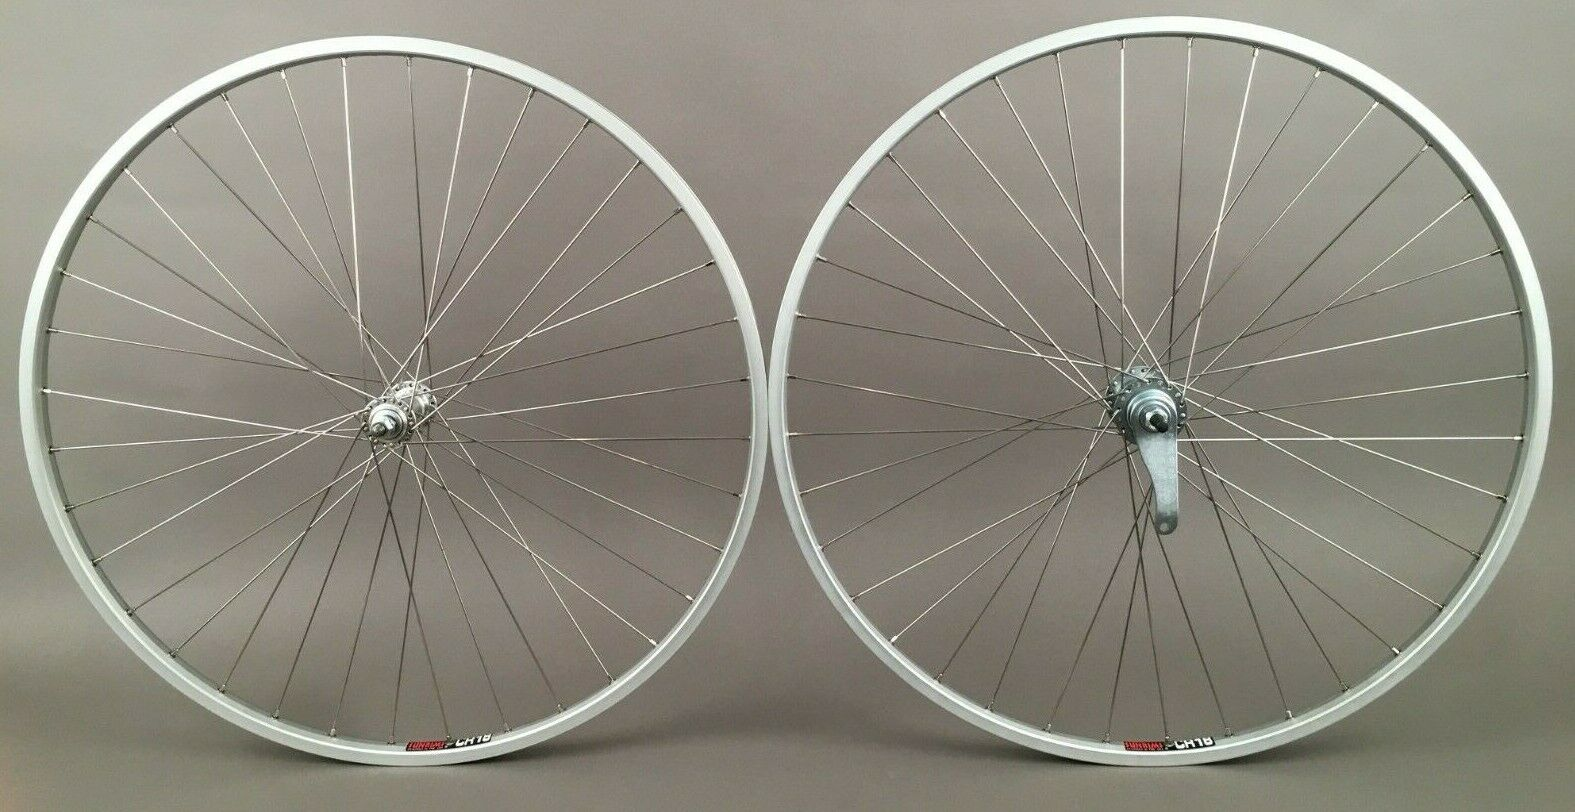 SUN CR18 Silver Rims Coaster Brake Single Speed Wheelset